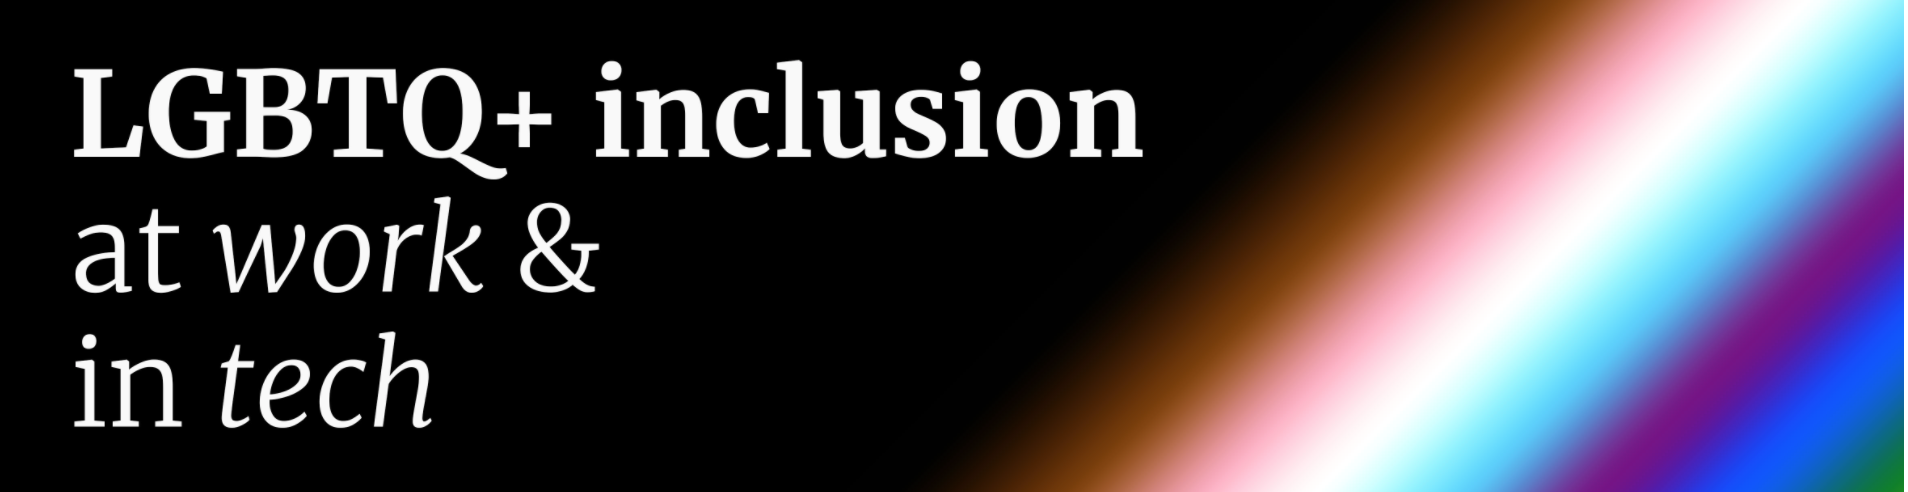 LGBTQ+ inclusion at work and in tech